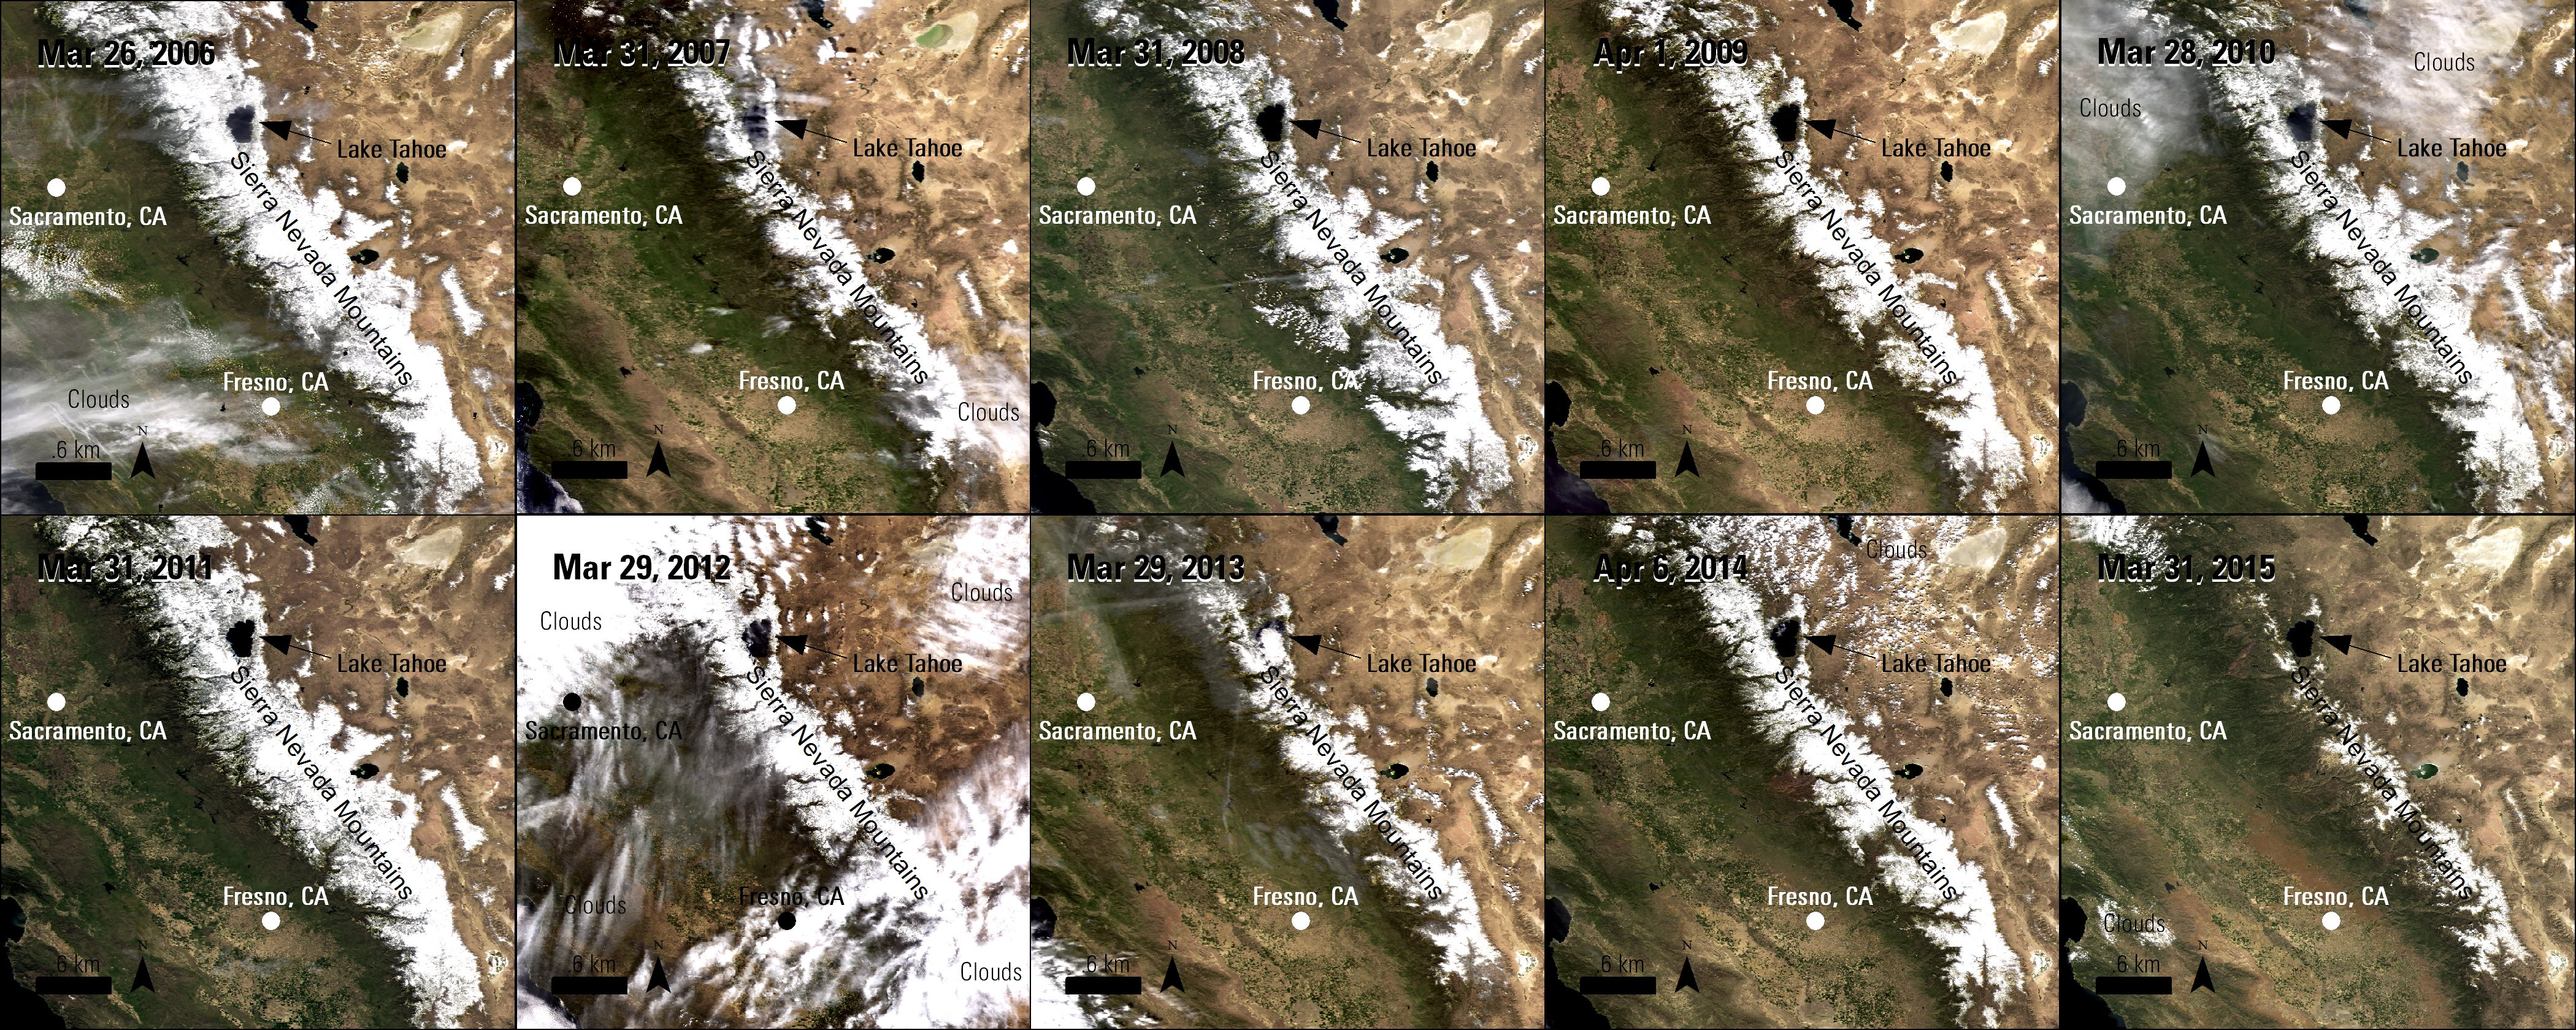 Ten Terra MODIS Surface Reflectance images over the Sierra Nevada Mountains, California, United States showing changes in snow pack cover throughout 2006 to 2015.